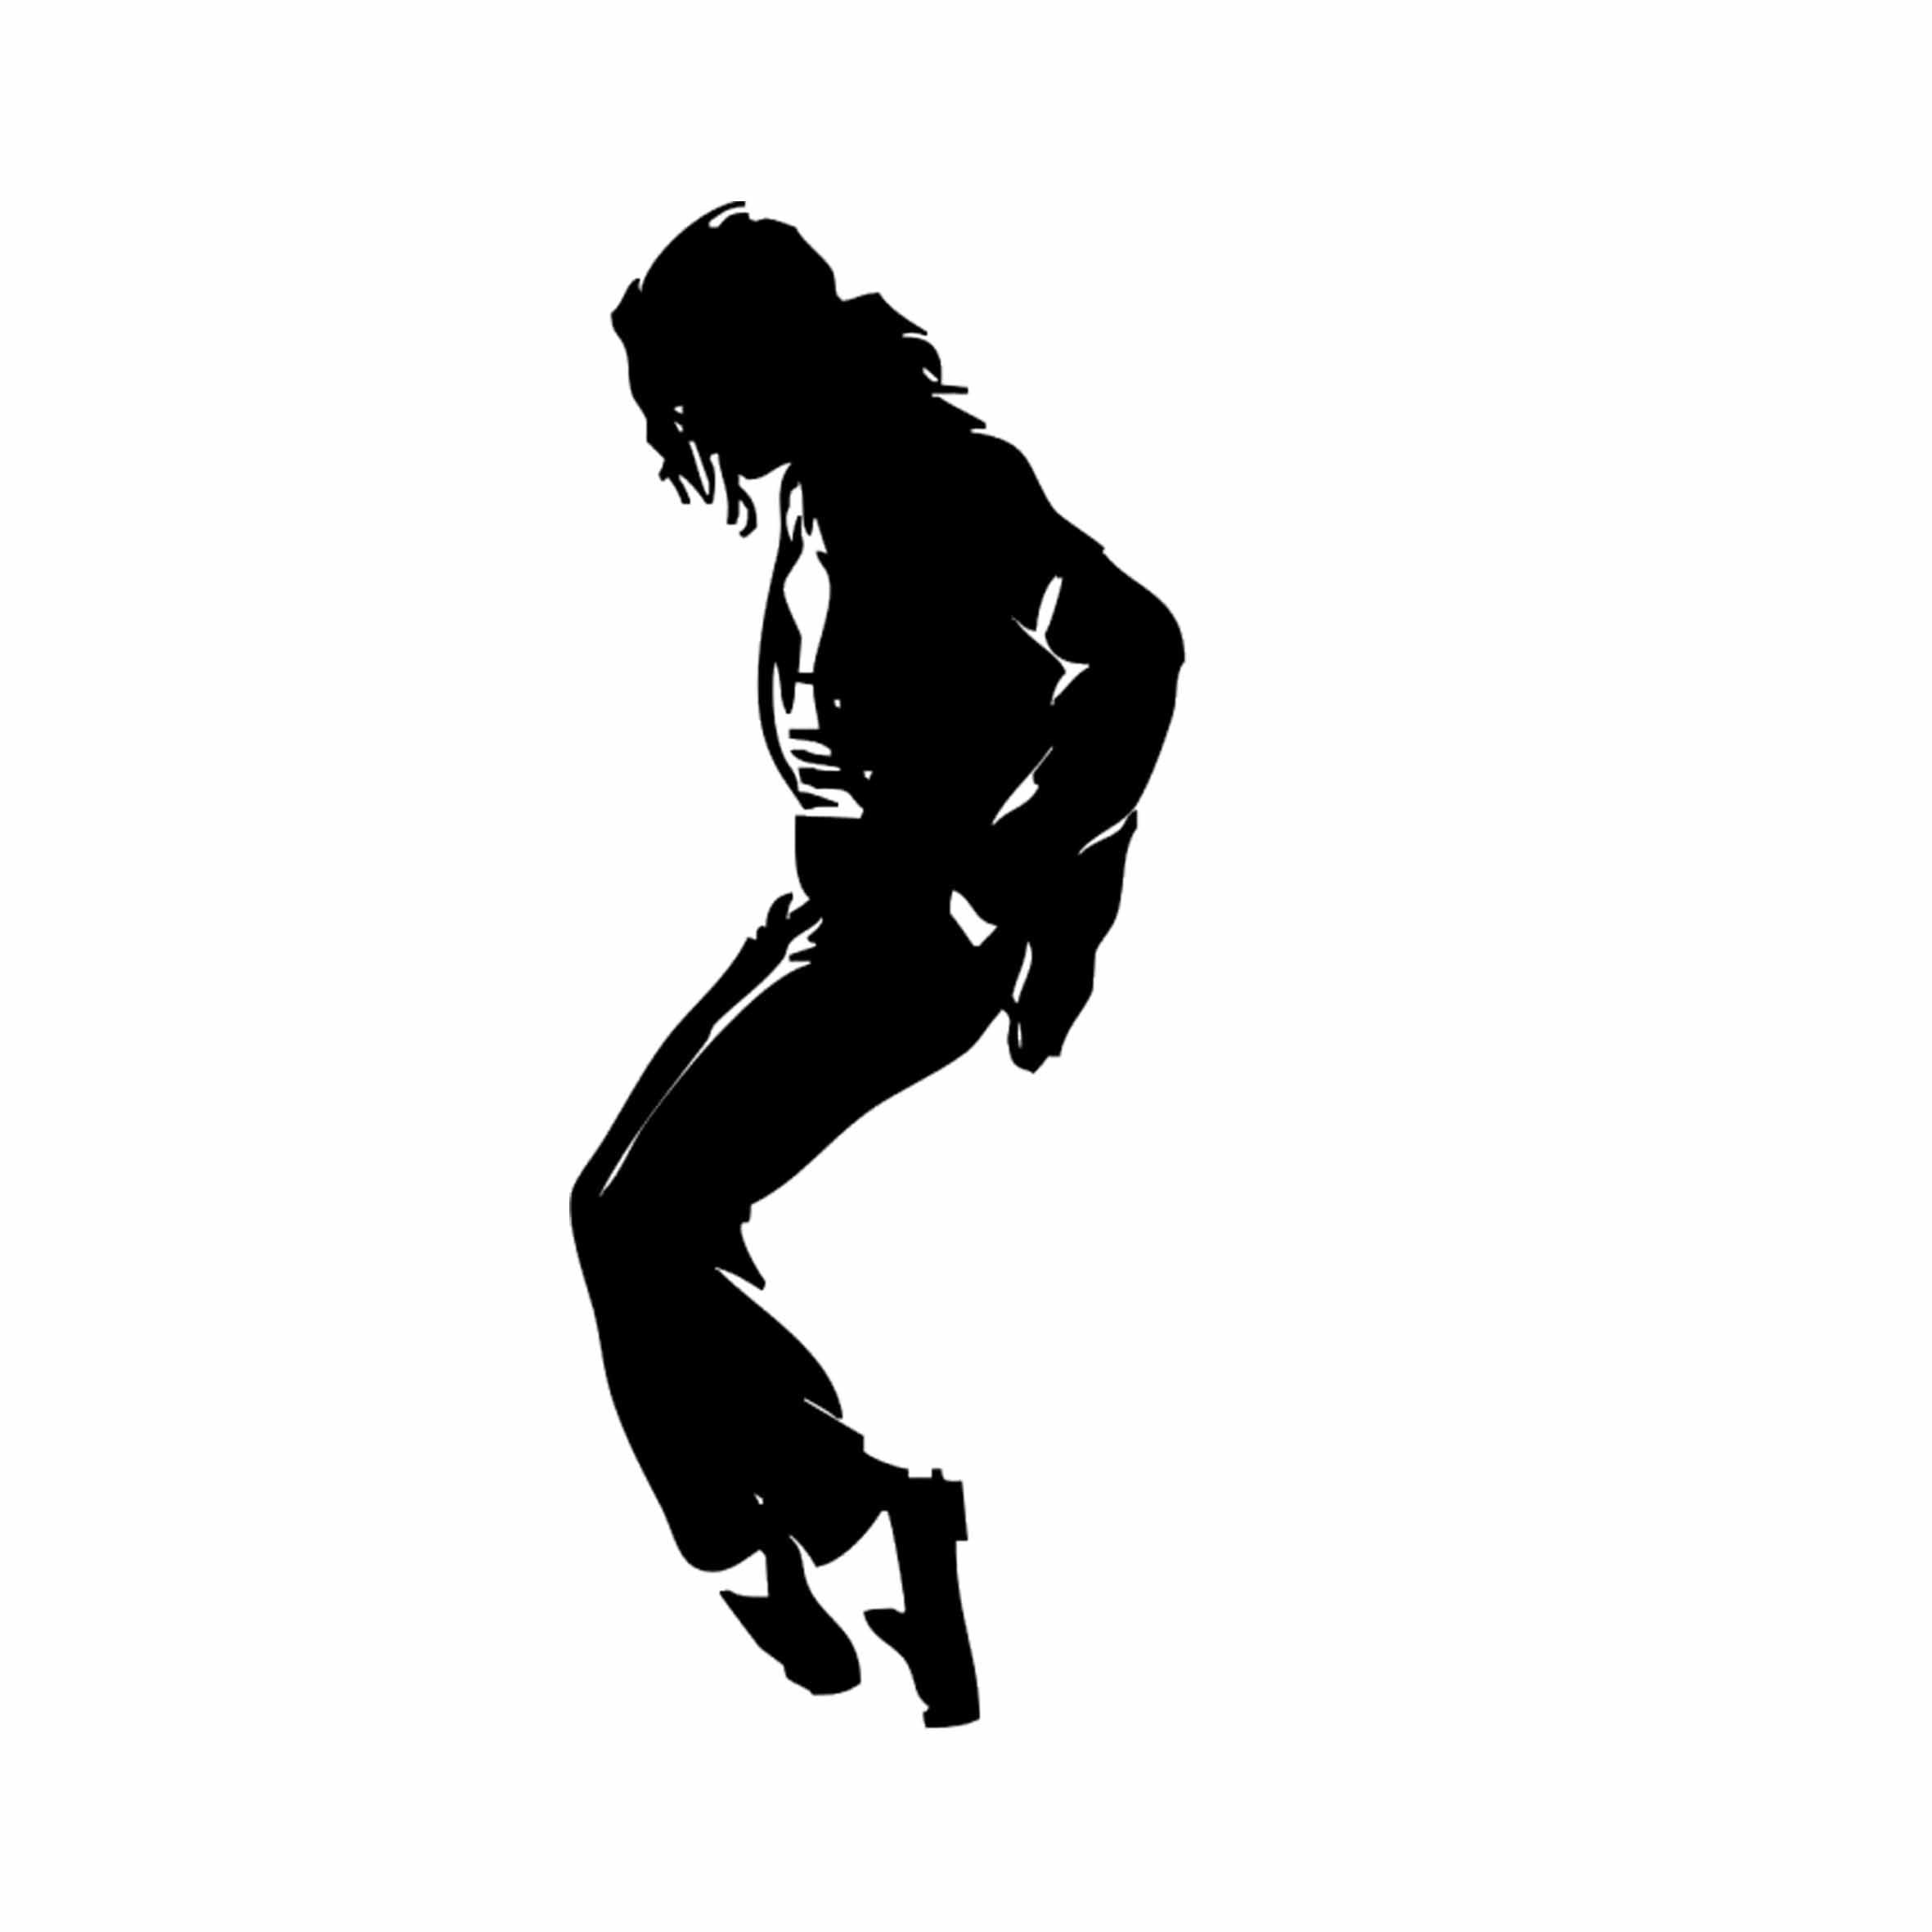 Famous Wall Sticker, Michael Jackson Moonwalk, Dance, Black - Size (7.5'' x18.9'') VINYL Sticker, Removable Wall Mural Decals, Home Decor Supplies - Perfect for Office, Home, Living Room, Bedroom, Dorm